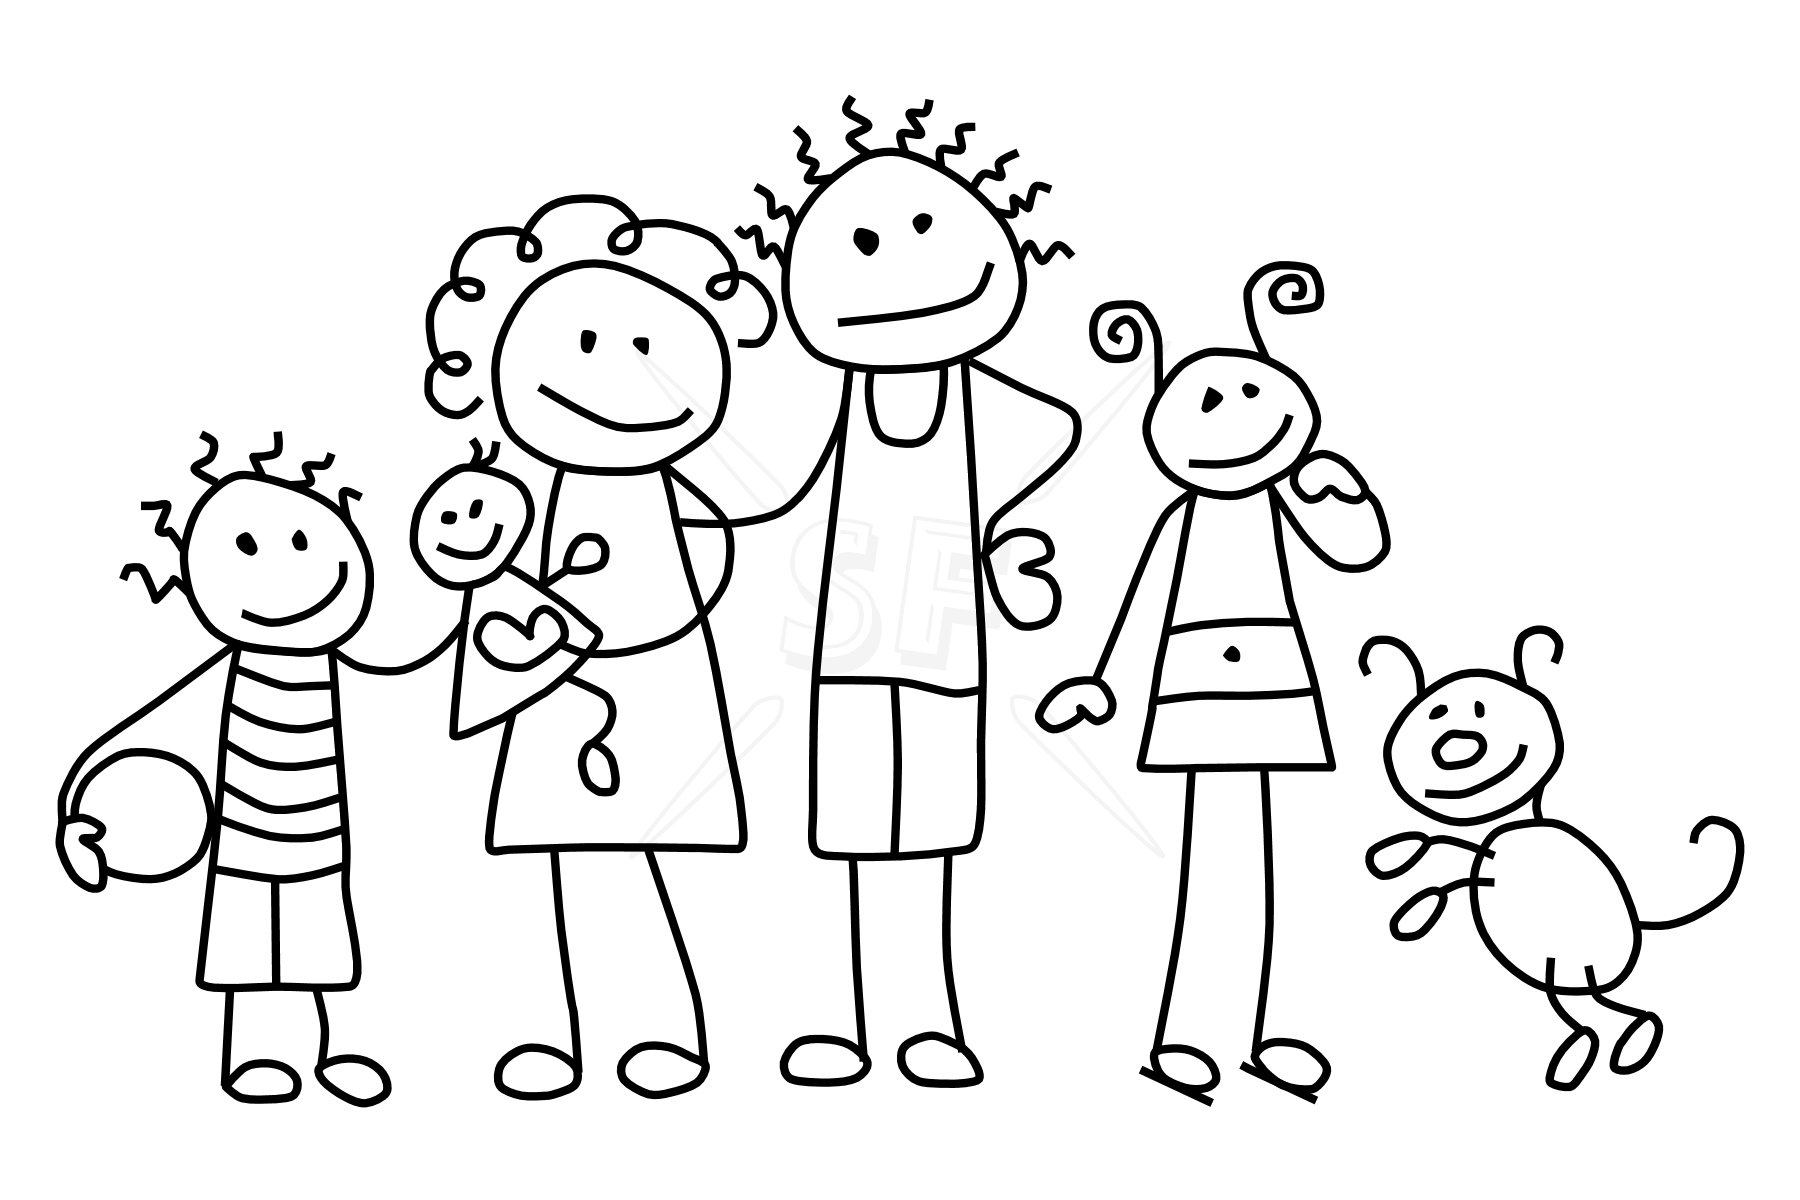 Stick Figure Families | From New York to San Francisco